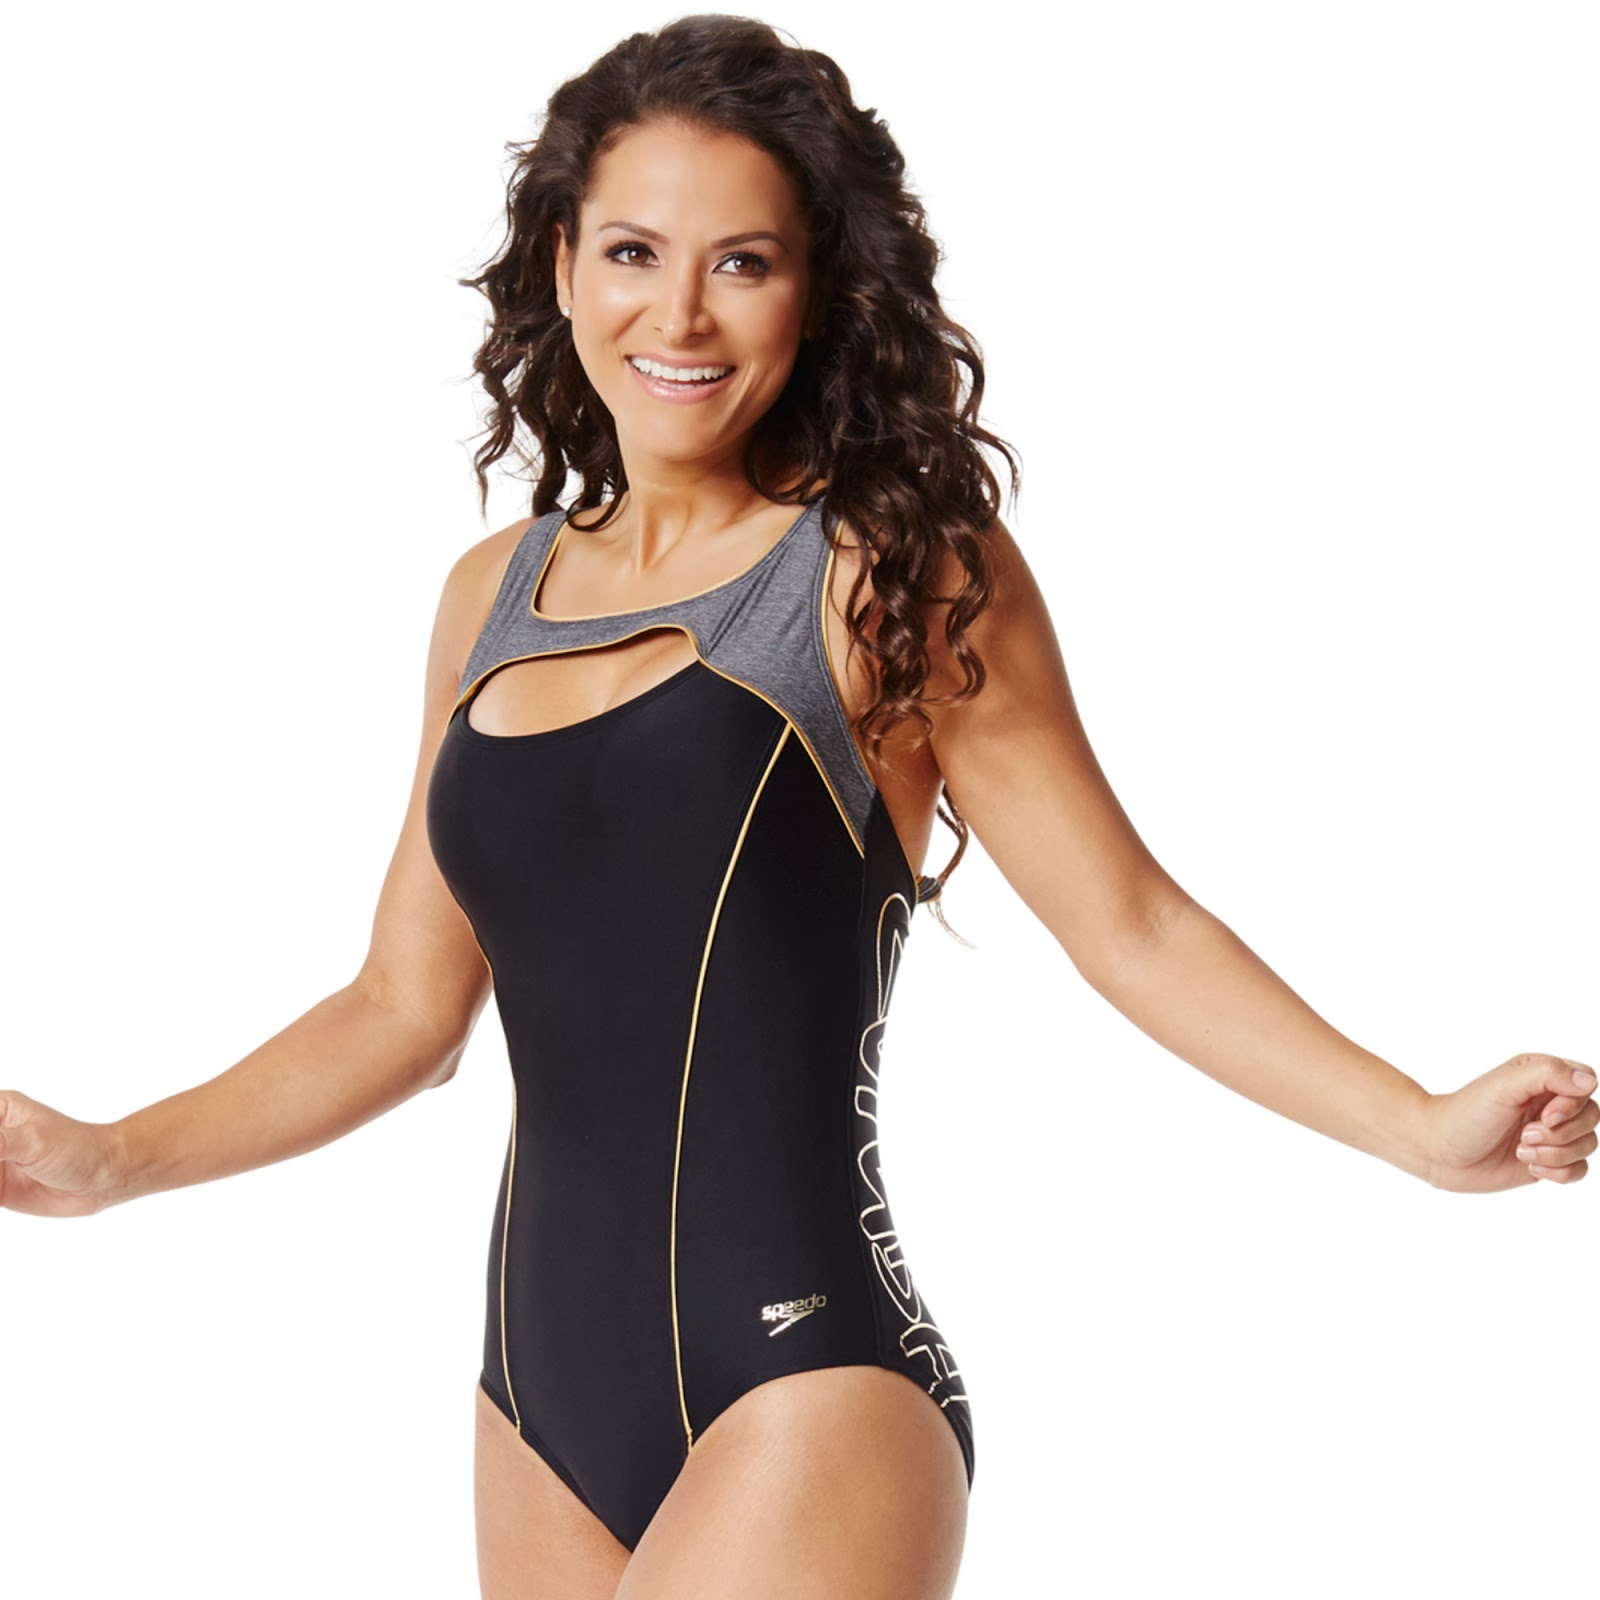 http://www.zumba.com/en-US/store-zin/US/product/foil-me-once-ultraback-one-piece?color=Black